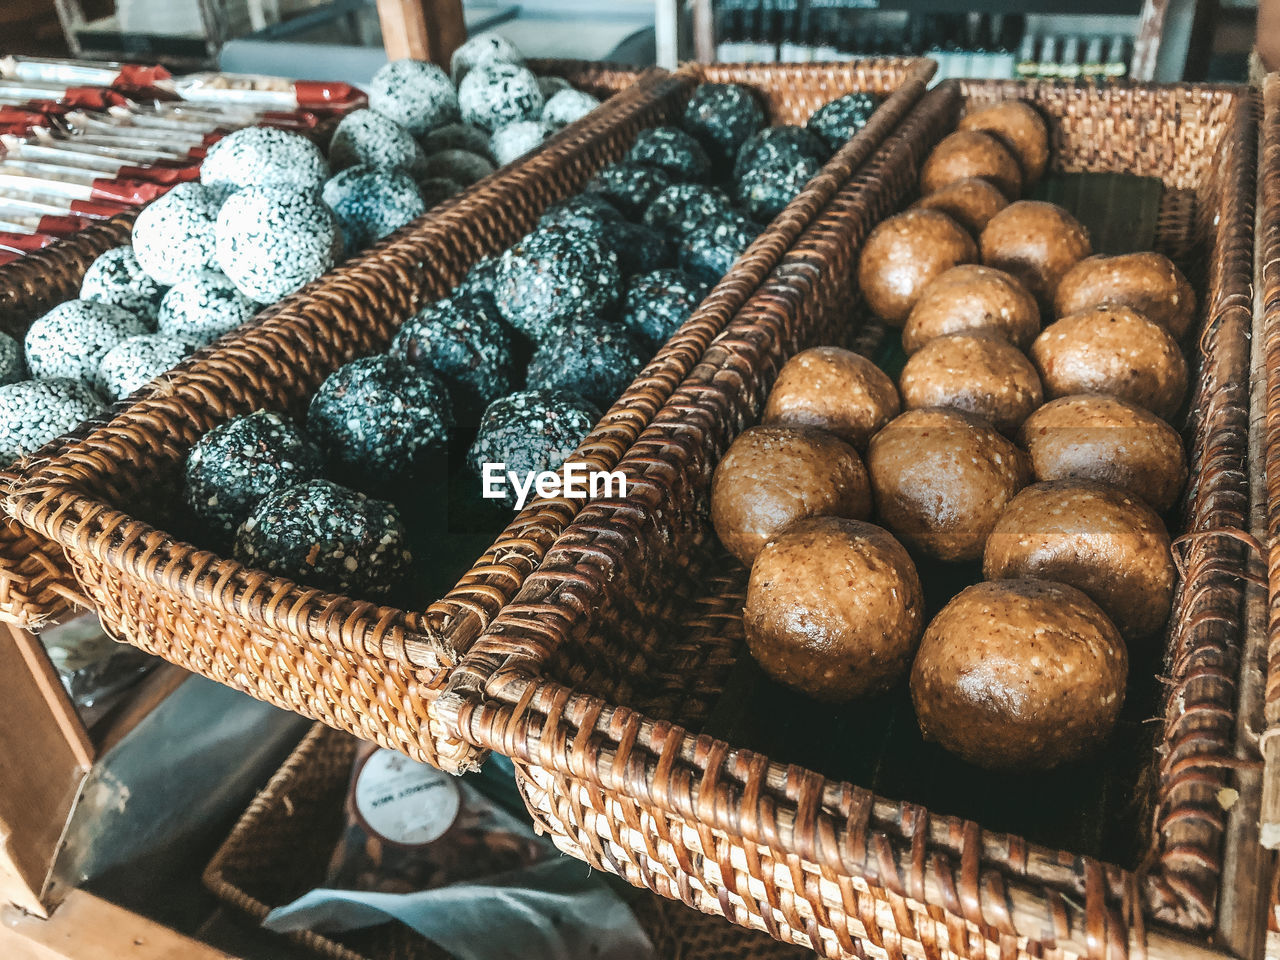 food and drink, basket, food, container, no people, freshness, still life, wicker, high angle view, indoors, brown, bread, close-up, baked, retail, large group of objects, wellbeing, focus on foreground, pattern, for sale, tray, snack